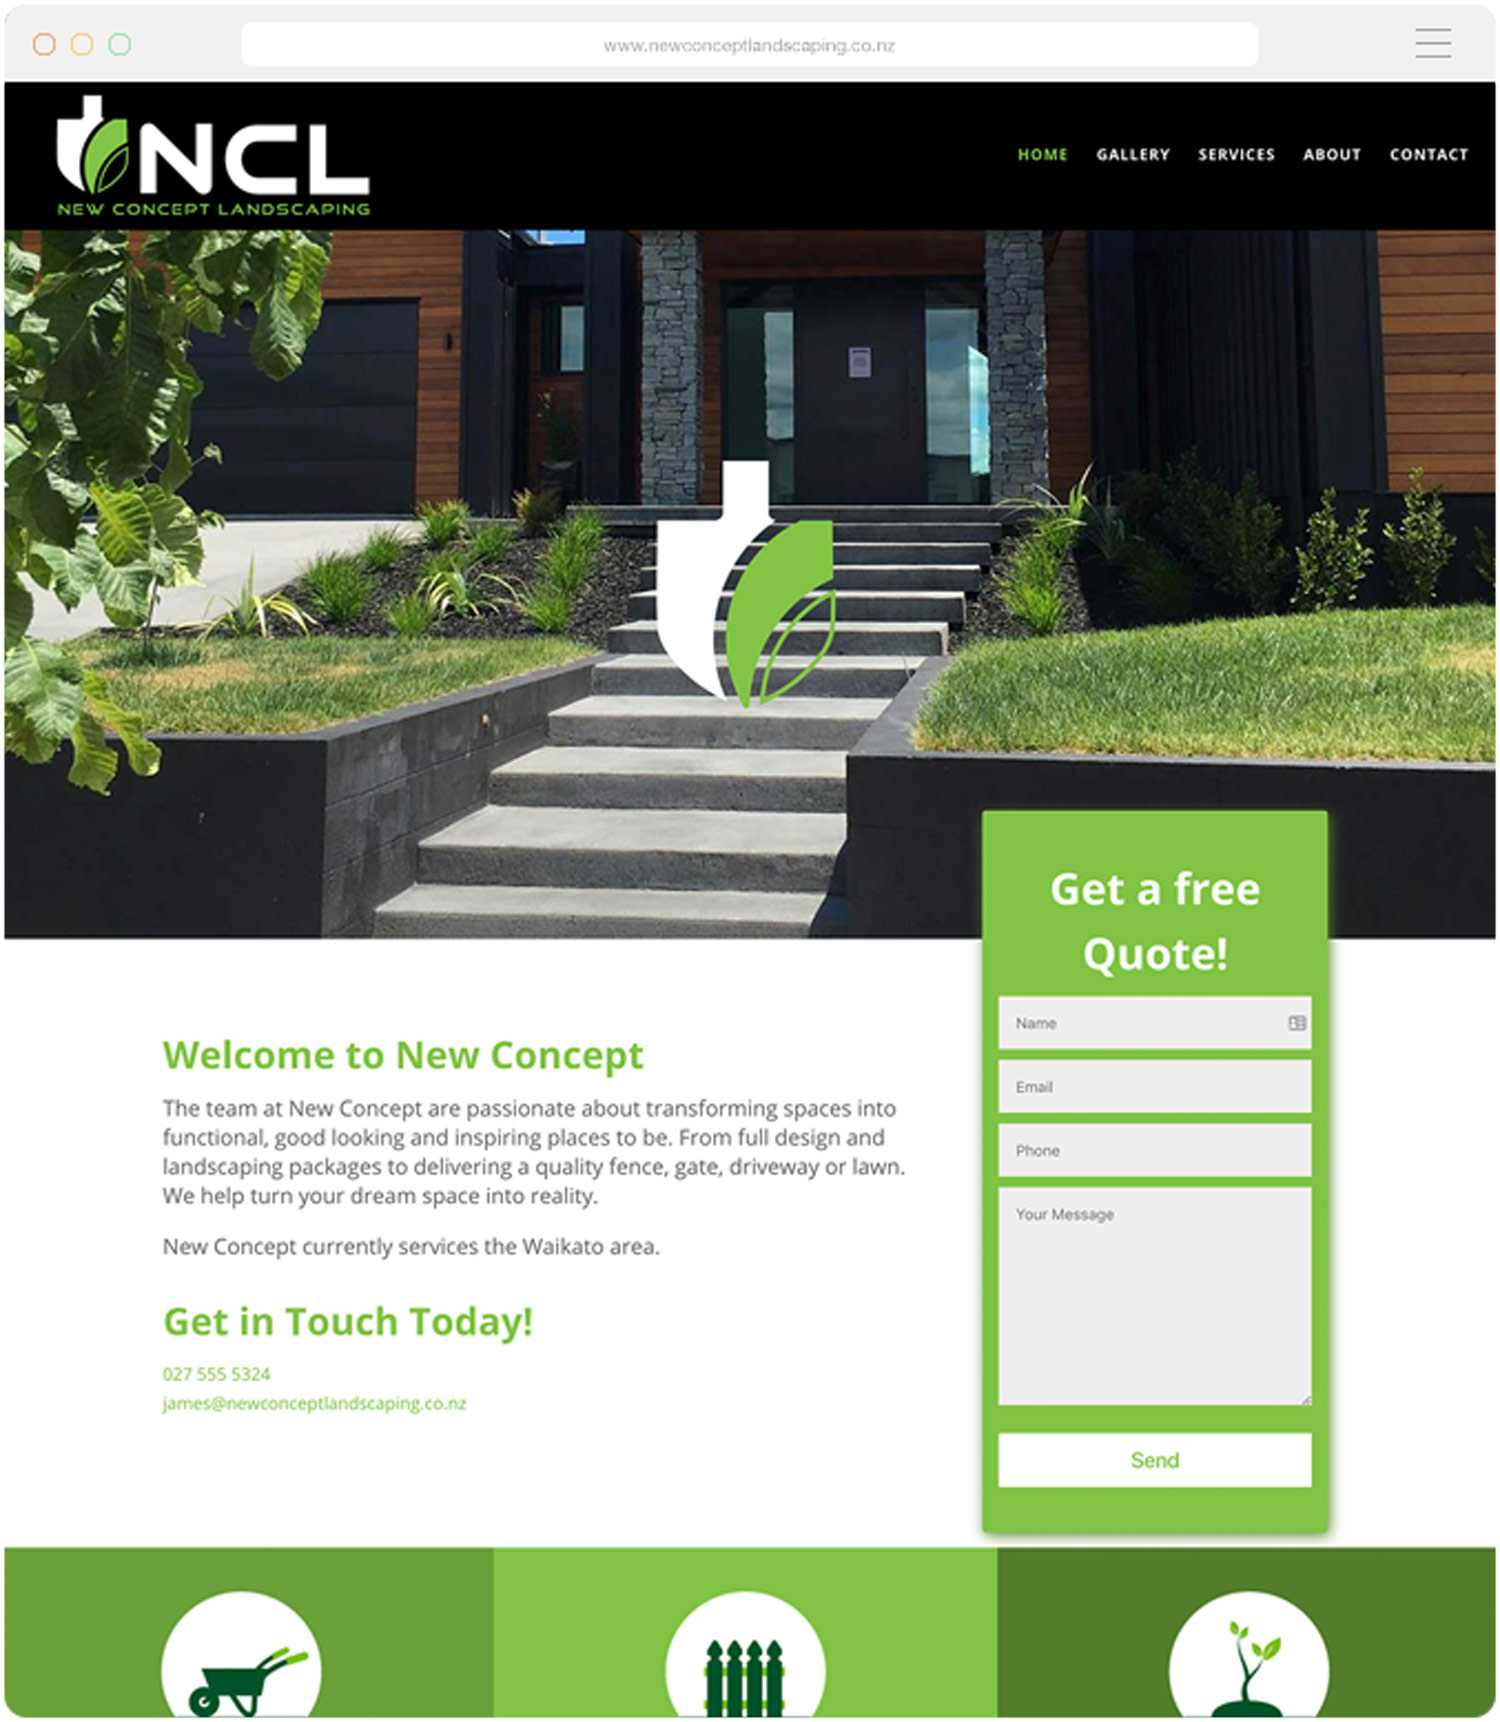 Landscaping Websitee Build for NCL